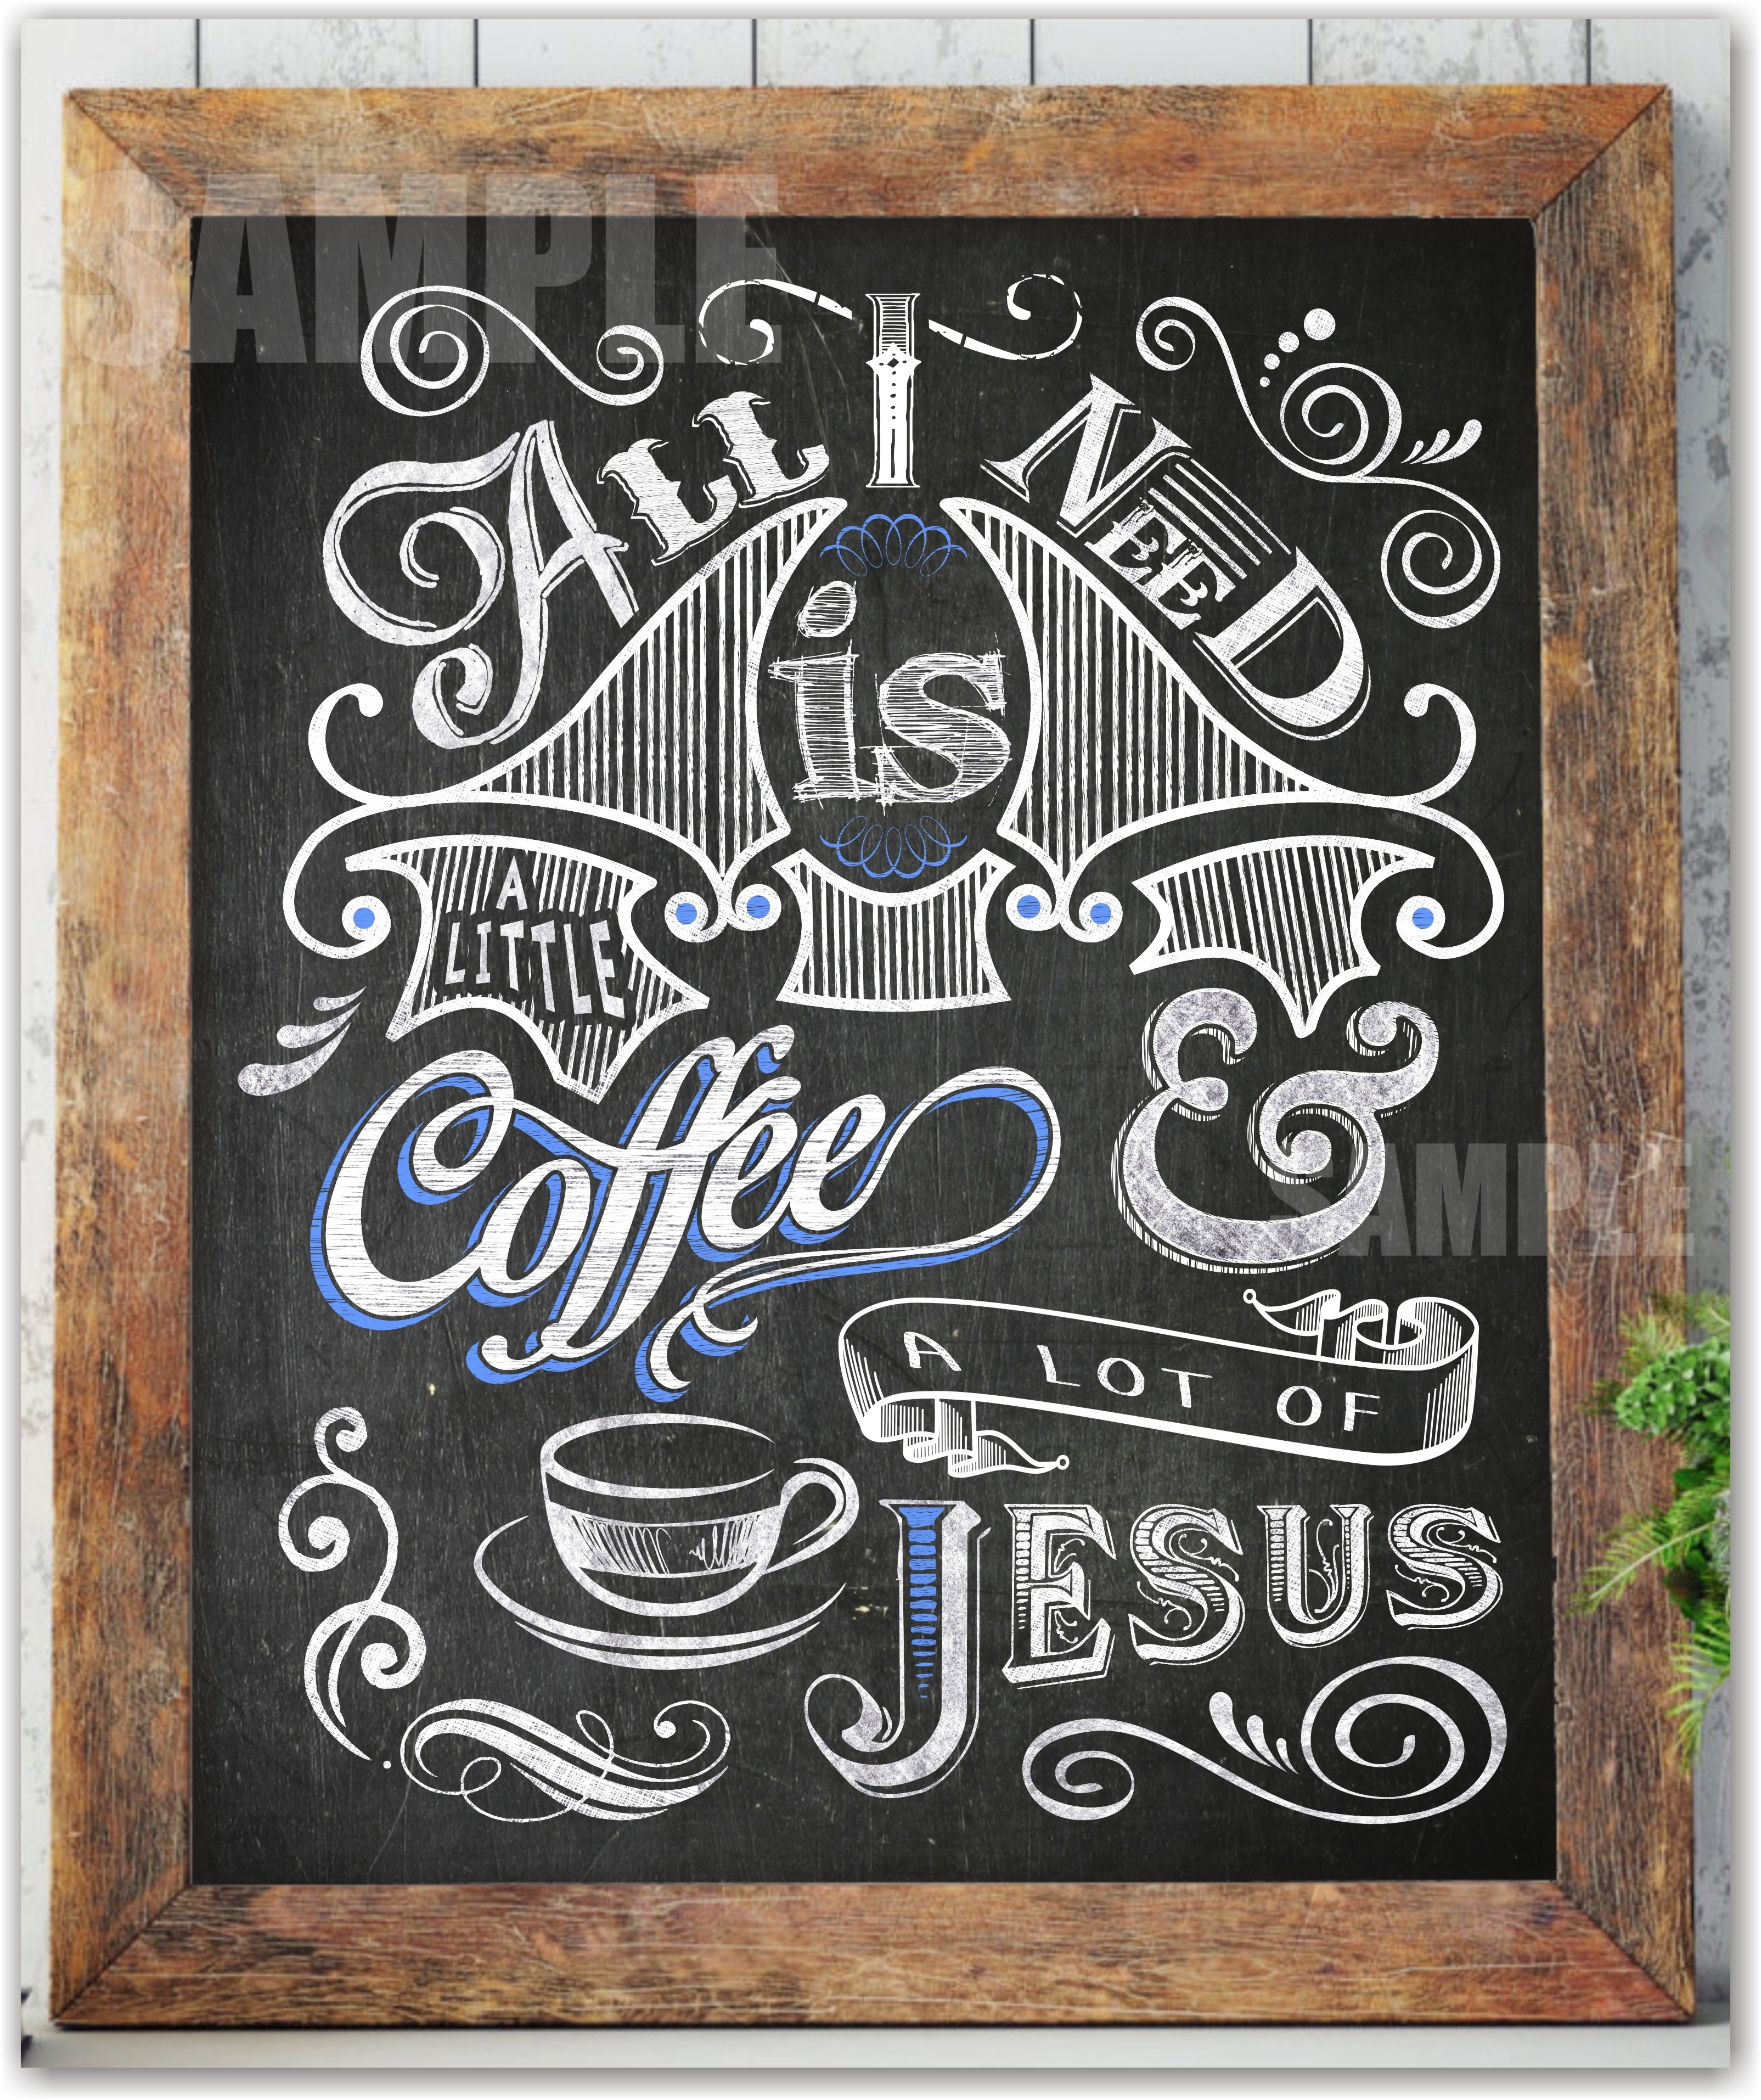 All I Need Is A Little Coffee And A Lot Of Jesus Coffee Wall Art intended for Coffee Wall Art (Image 1 of 20)